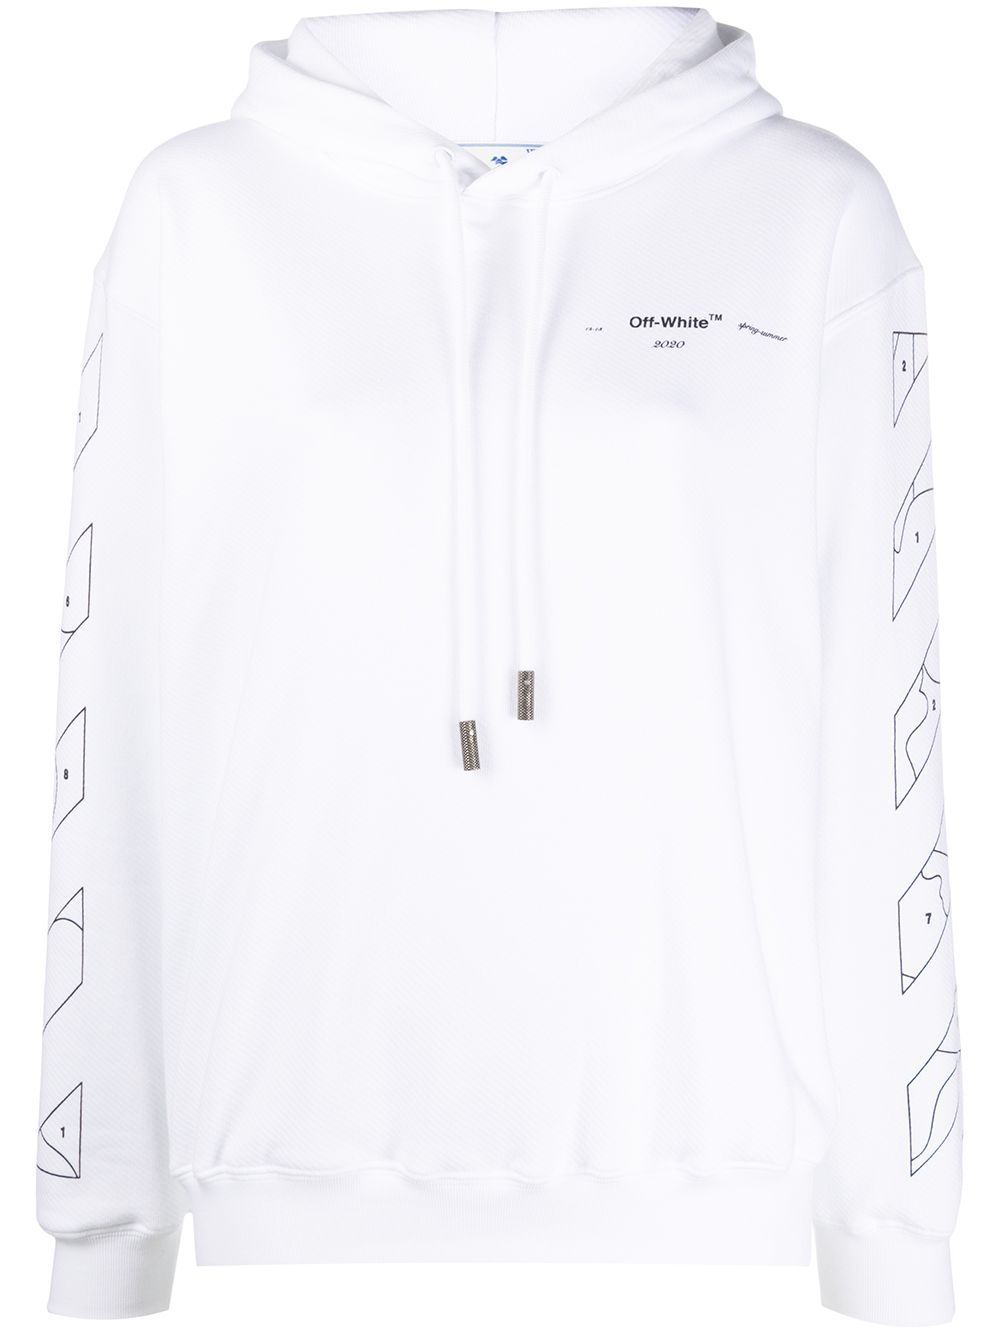 Off White Puzzle Arrows Hoodie Farfetch Off White Hoodie Hoodie Aesthetic Off White [ 1334 x 1000 Pixel ]